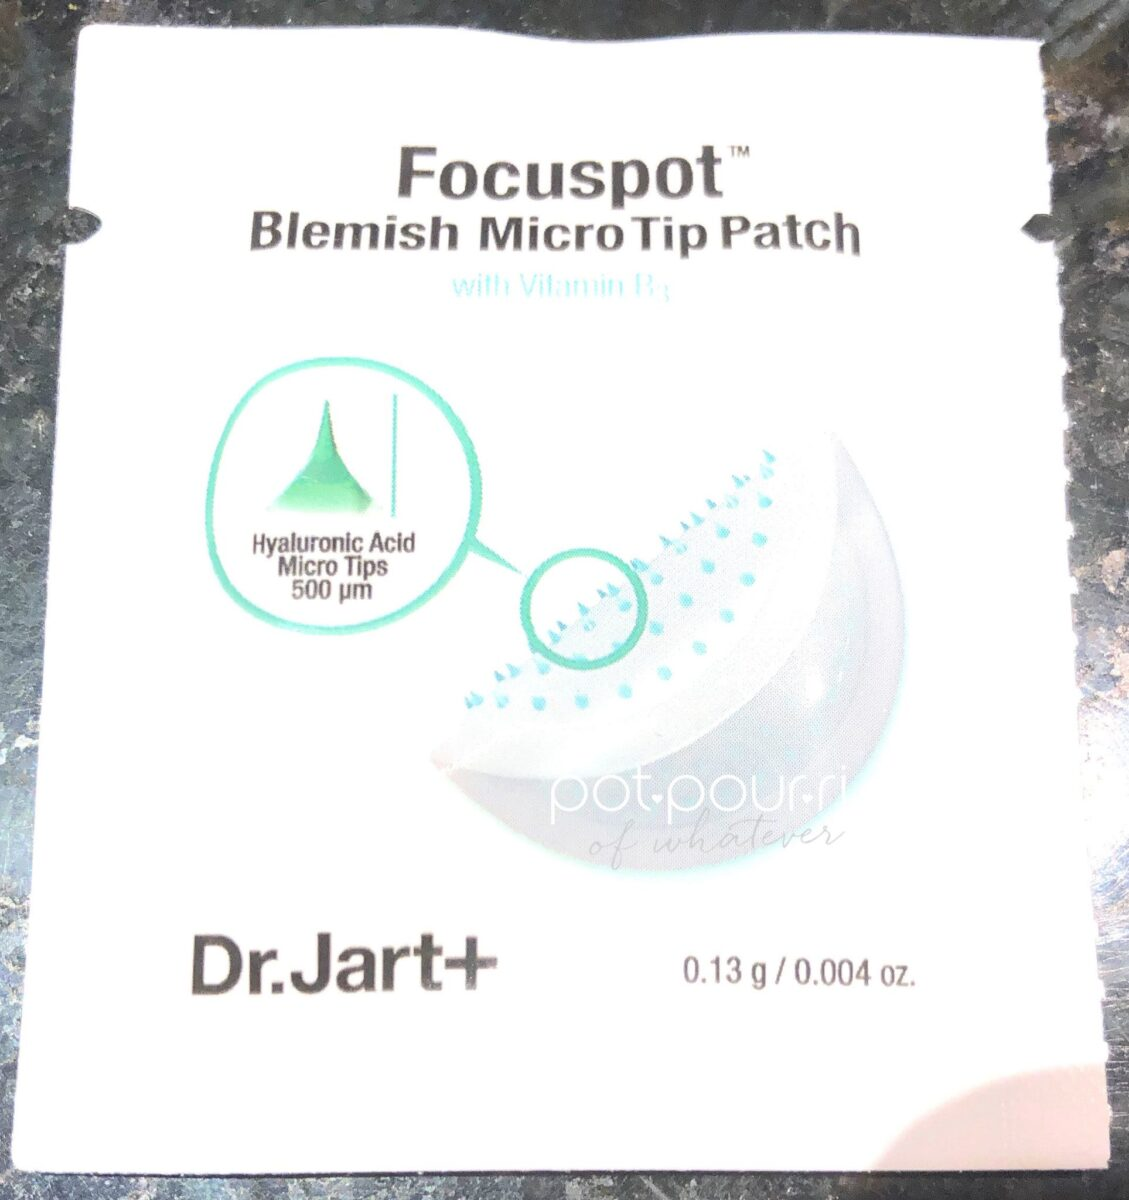 DRJART FOCUSPOT MICRO TIP PATCH HYALURONIC ACID MICRO TIPS